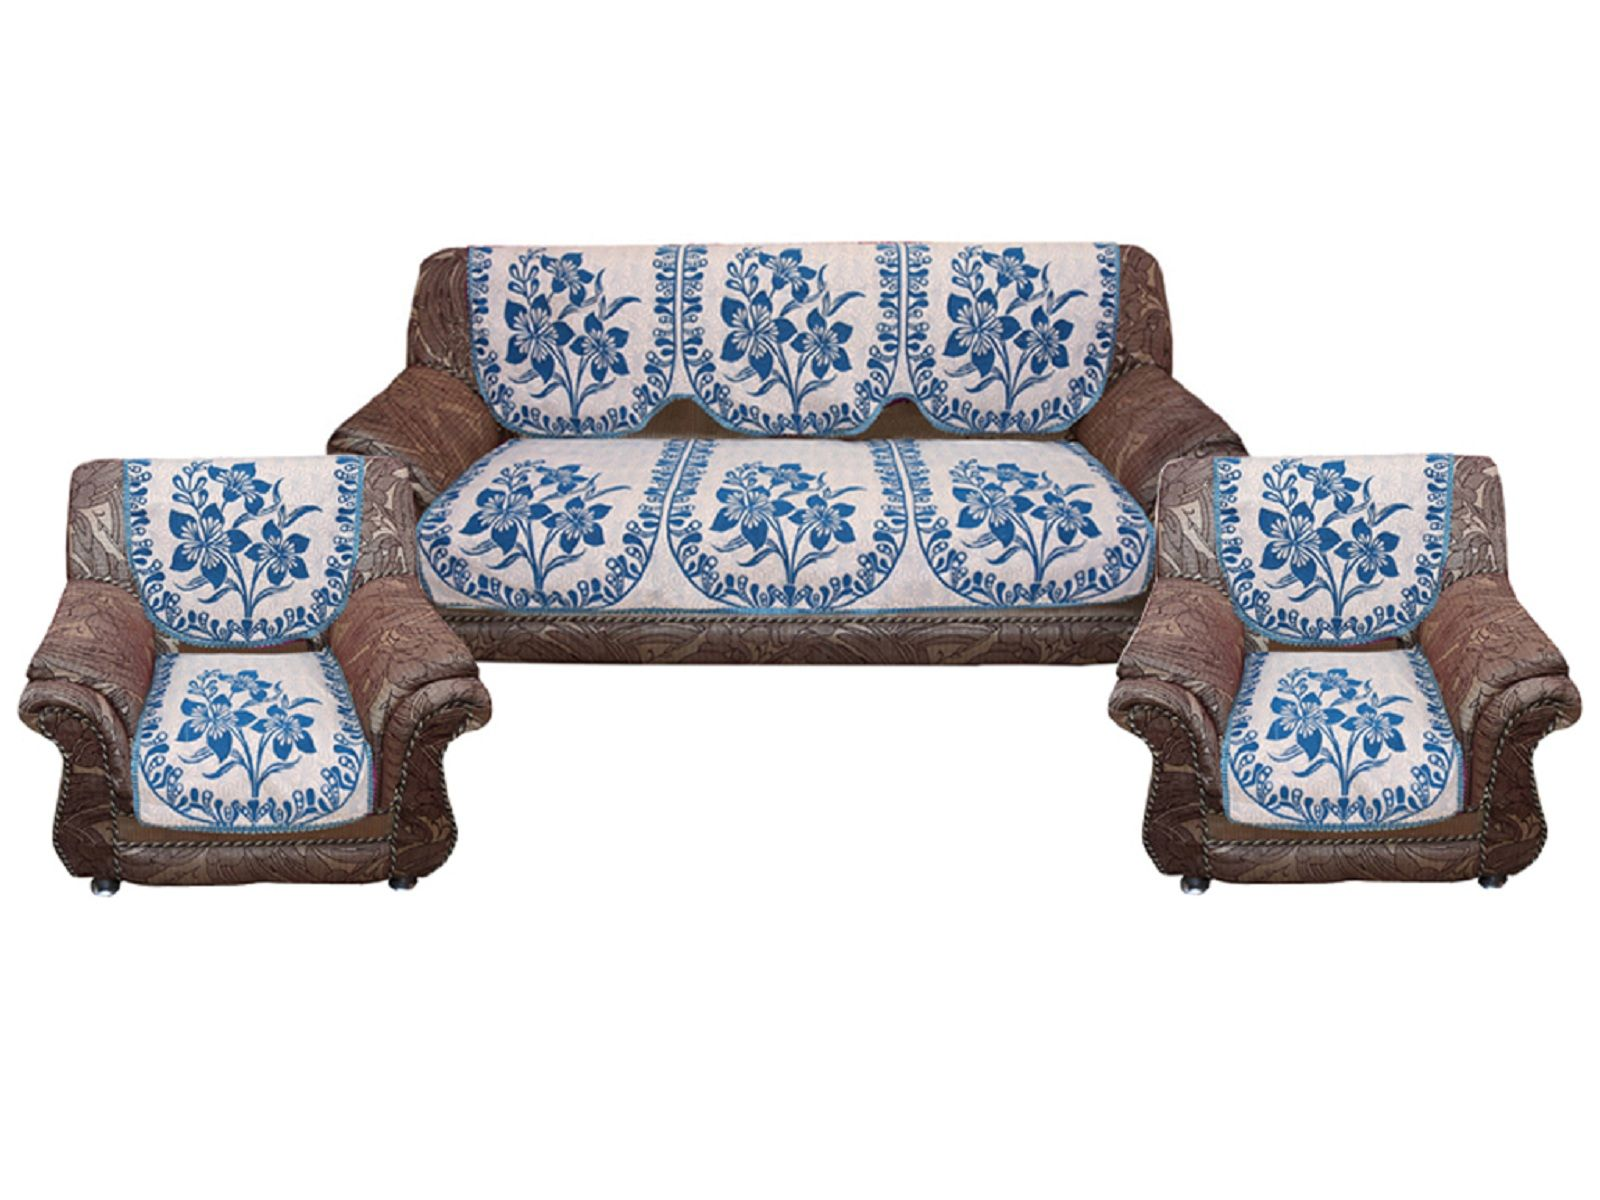 Kuber Industries™ Sofa Cover Heavy Cotton Cloth 5 Seater Set -10 Pieces- Sky Blue (Flower Design) (Code-SFC16)